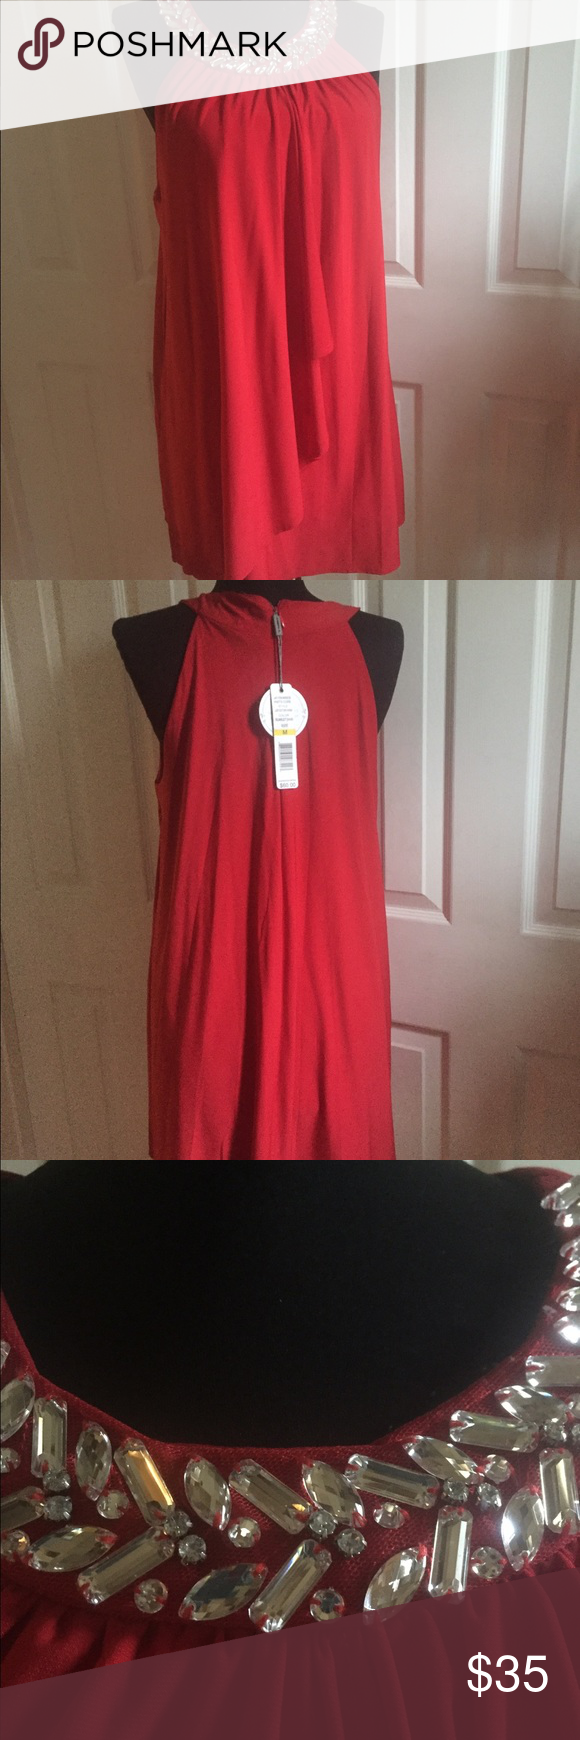 Joseph A Red Dress New-- Joseph A Red Dress Embellished Halter Dress :  ·       Silhouette: Shift ·       Closure: Back Zipper ·       Sleeve Length: Sleeveless ·       Total Length: 32 Inches ·       Bust Across (Underarm to underarm): 21 Inches; size: S ·       Waist Across: 24 Inches ·       Hips Across: 26 Inches Joseph A Dresses Midi